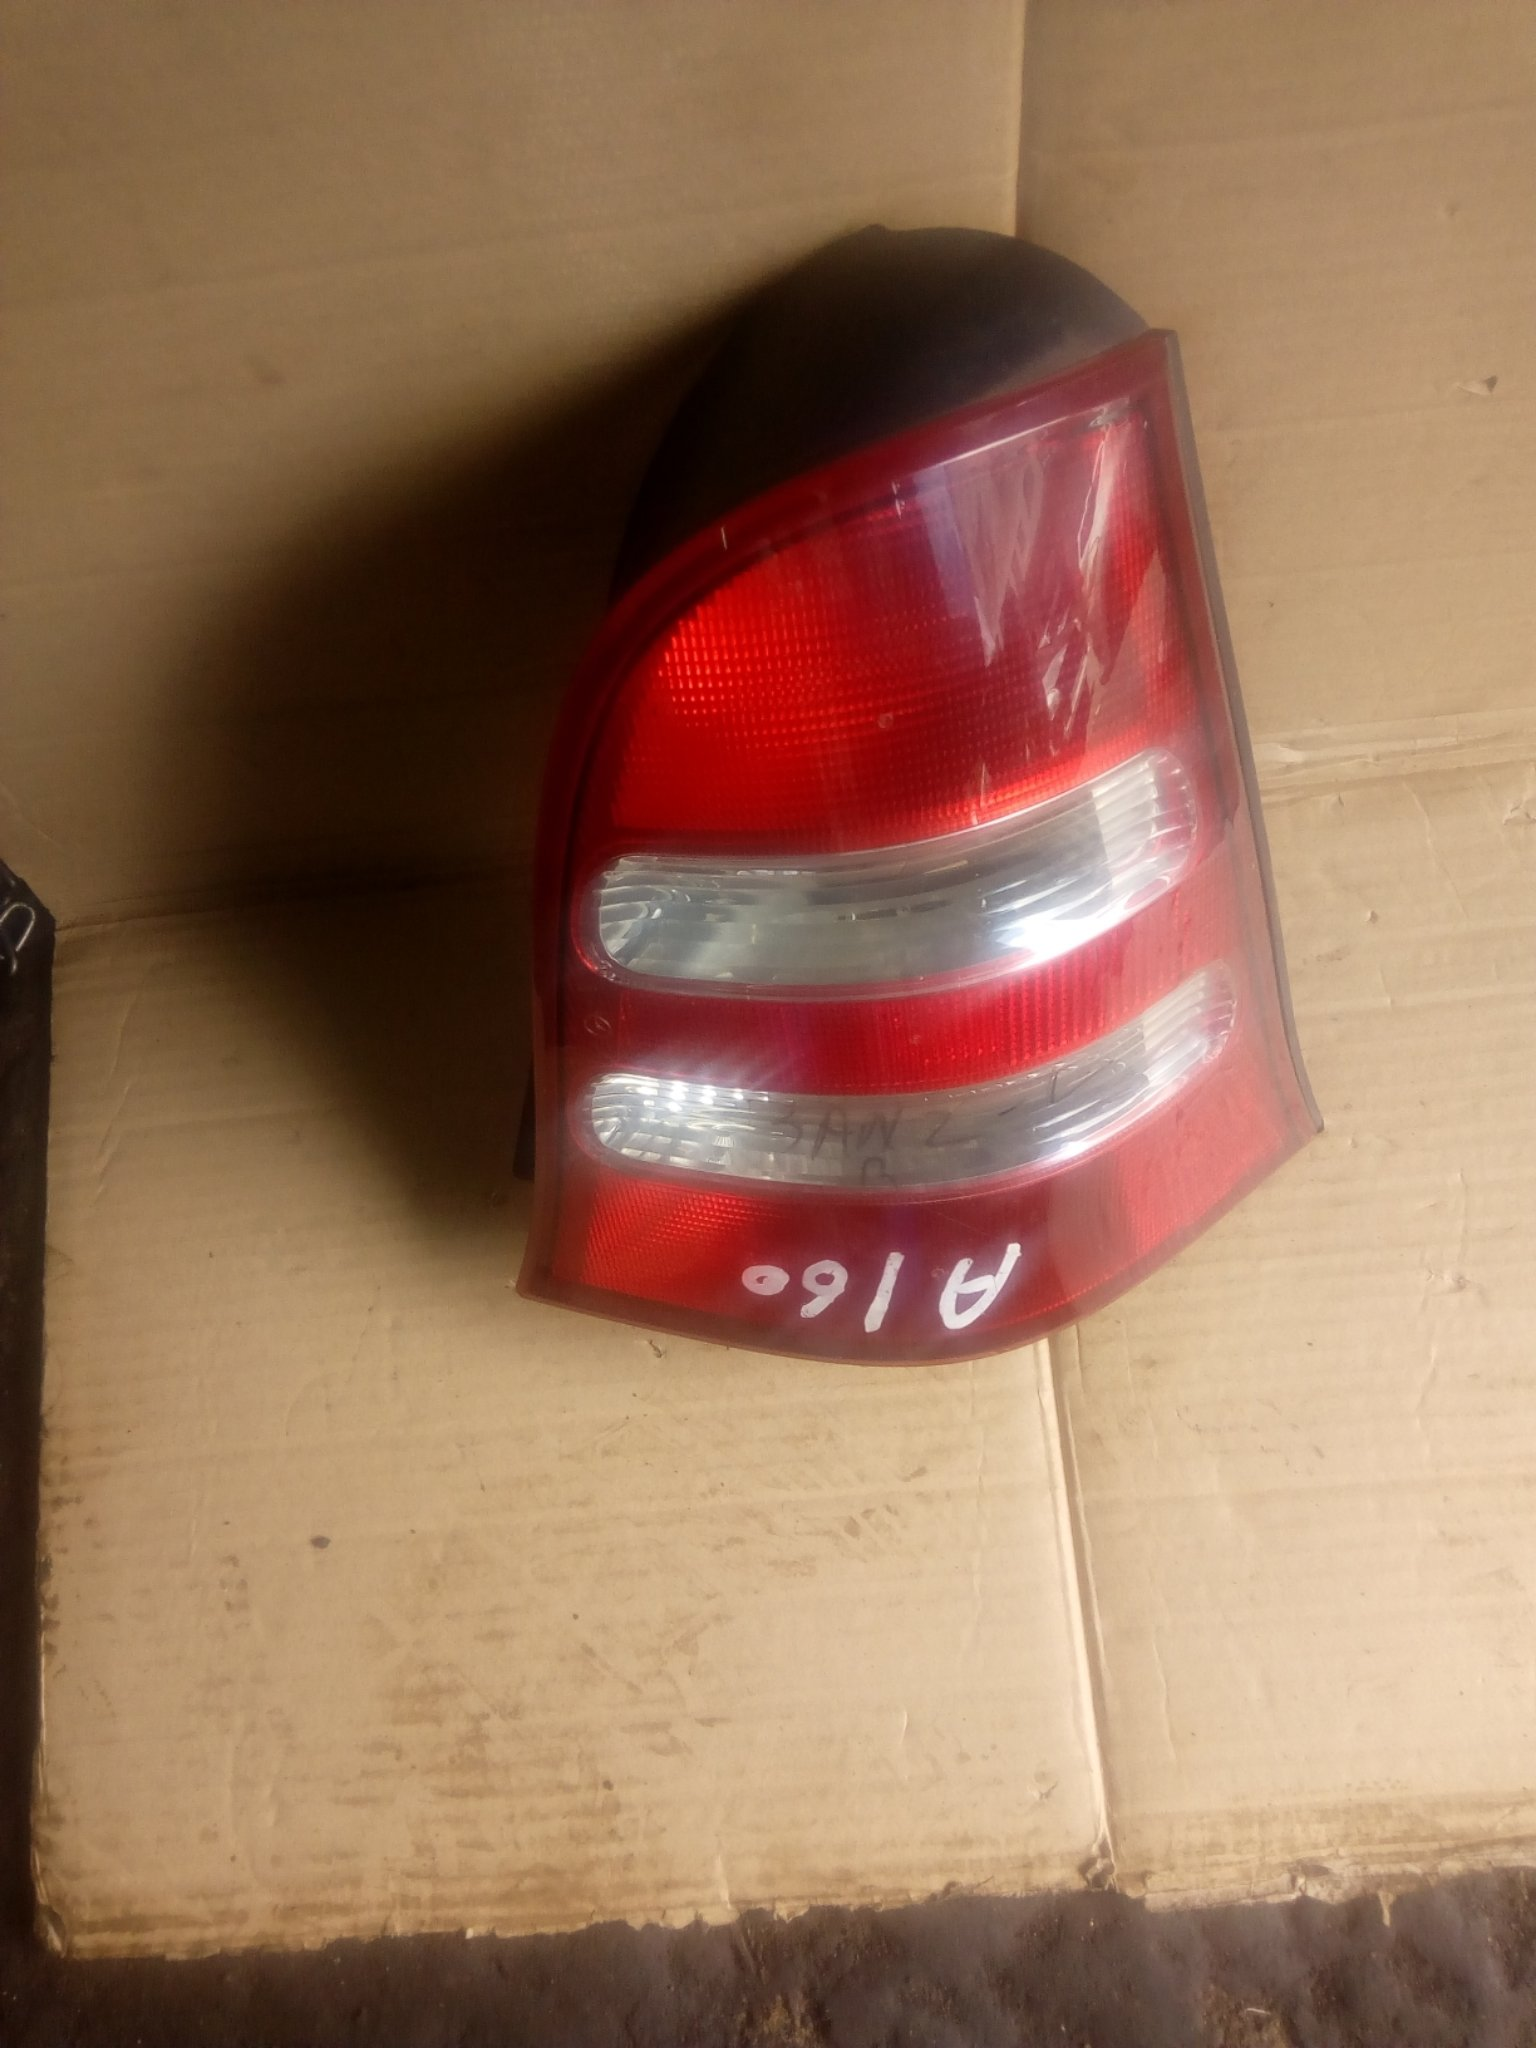 Meecedez benz tail light A160 00249